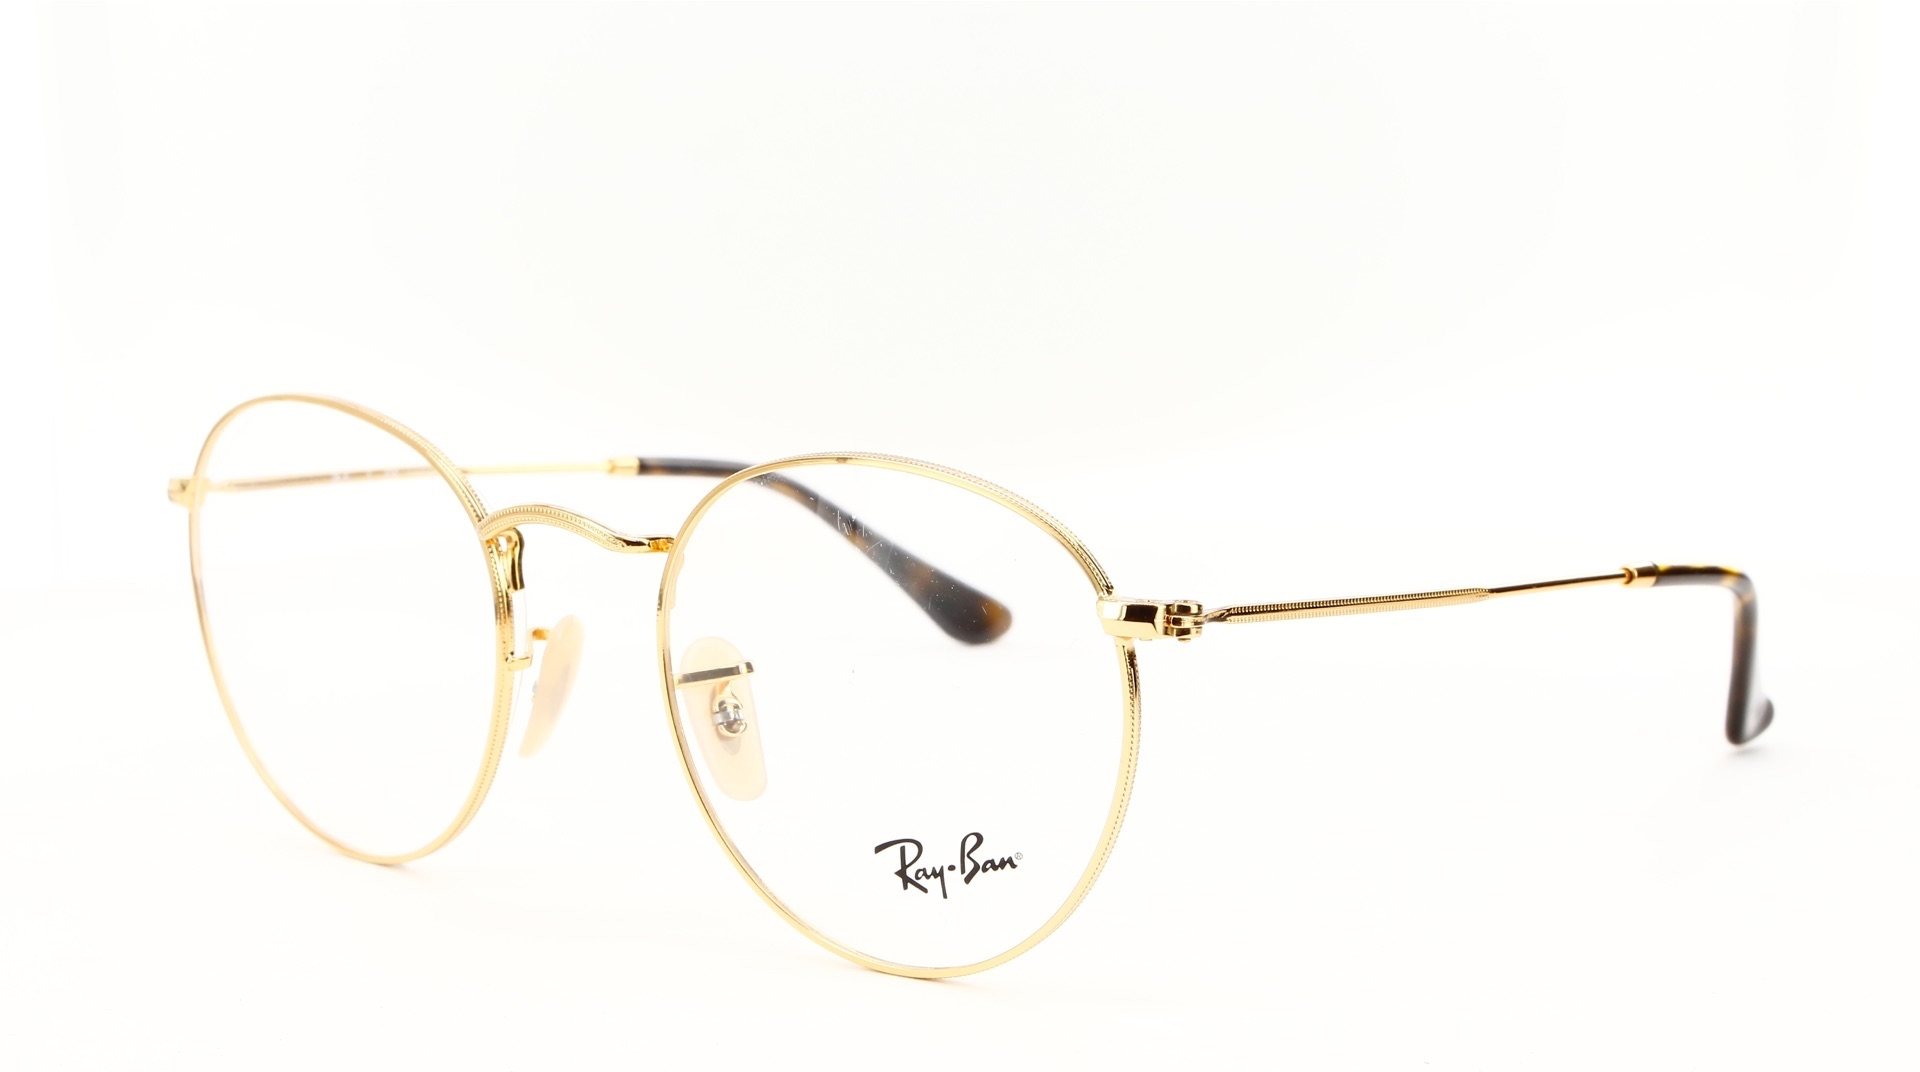 Ray-Ban - ref: 73637